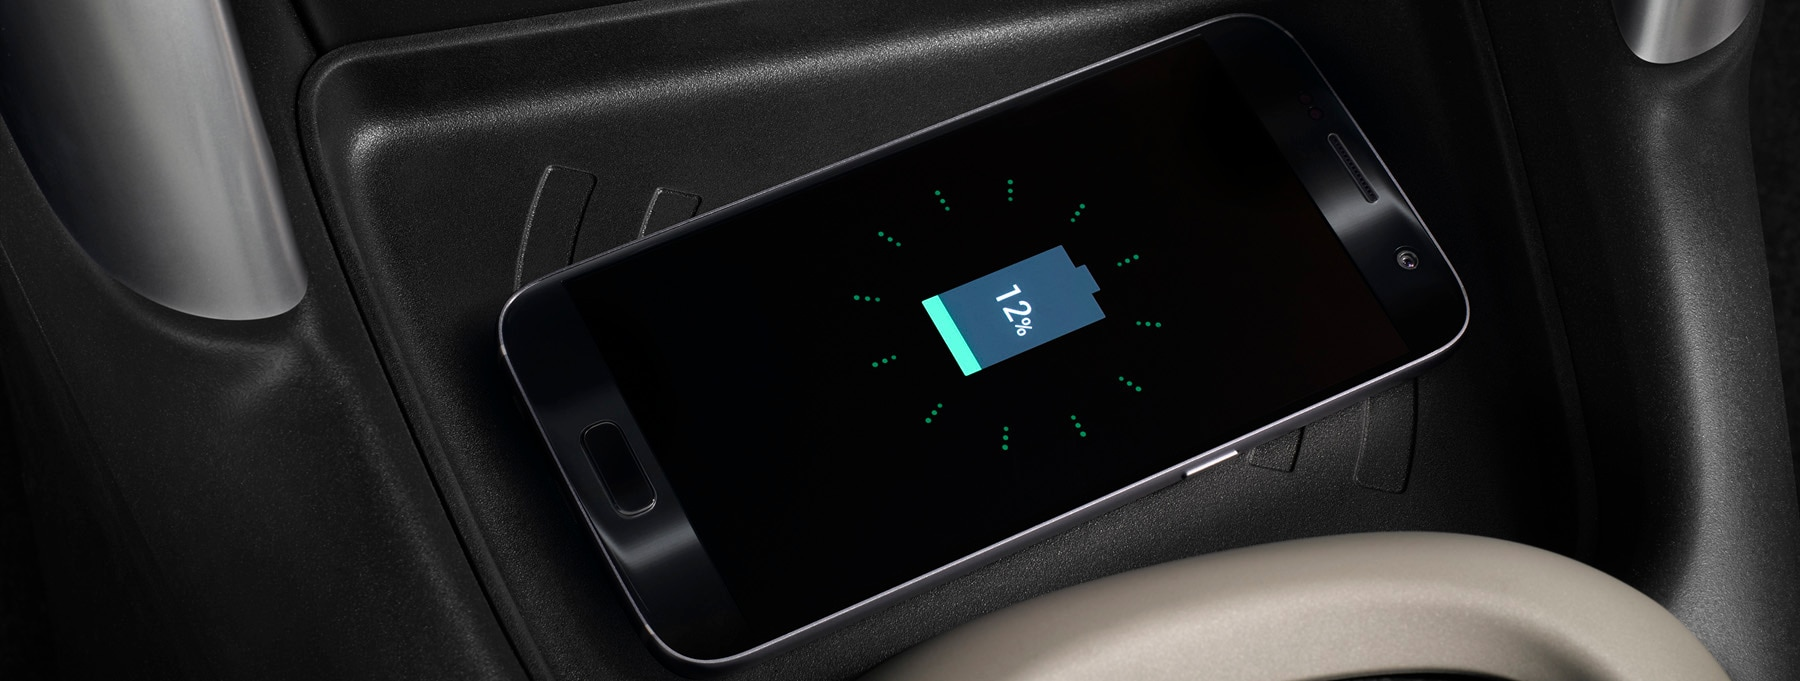 Citroen Wireless Charging